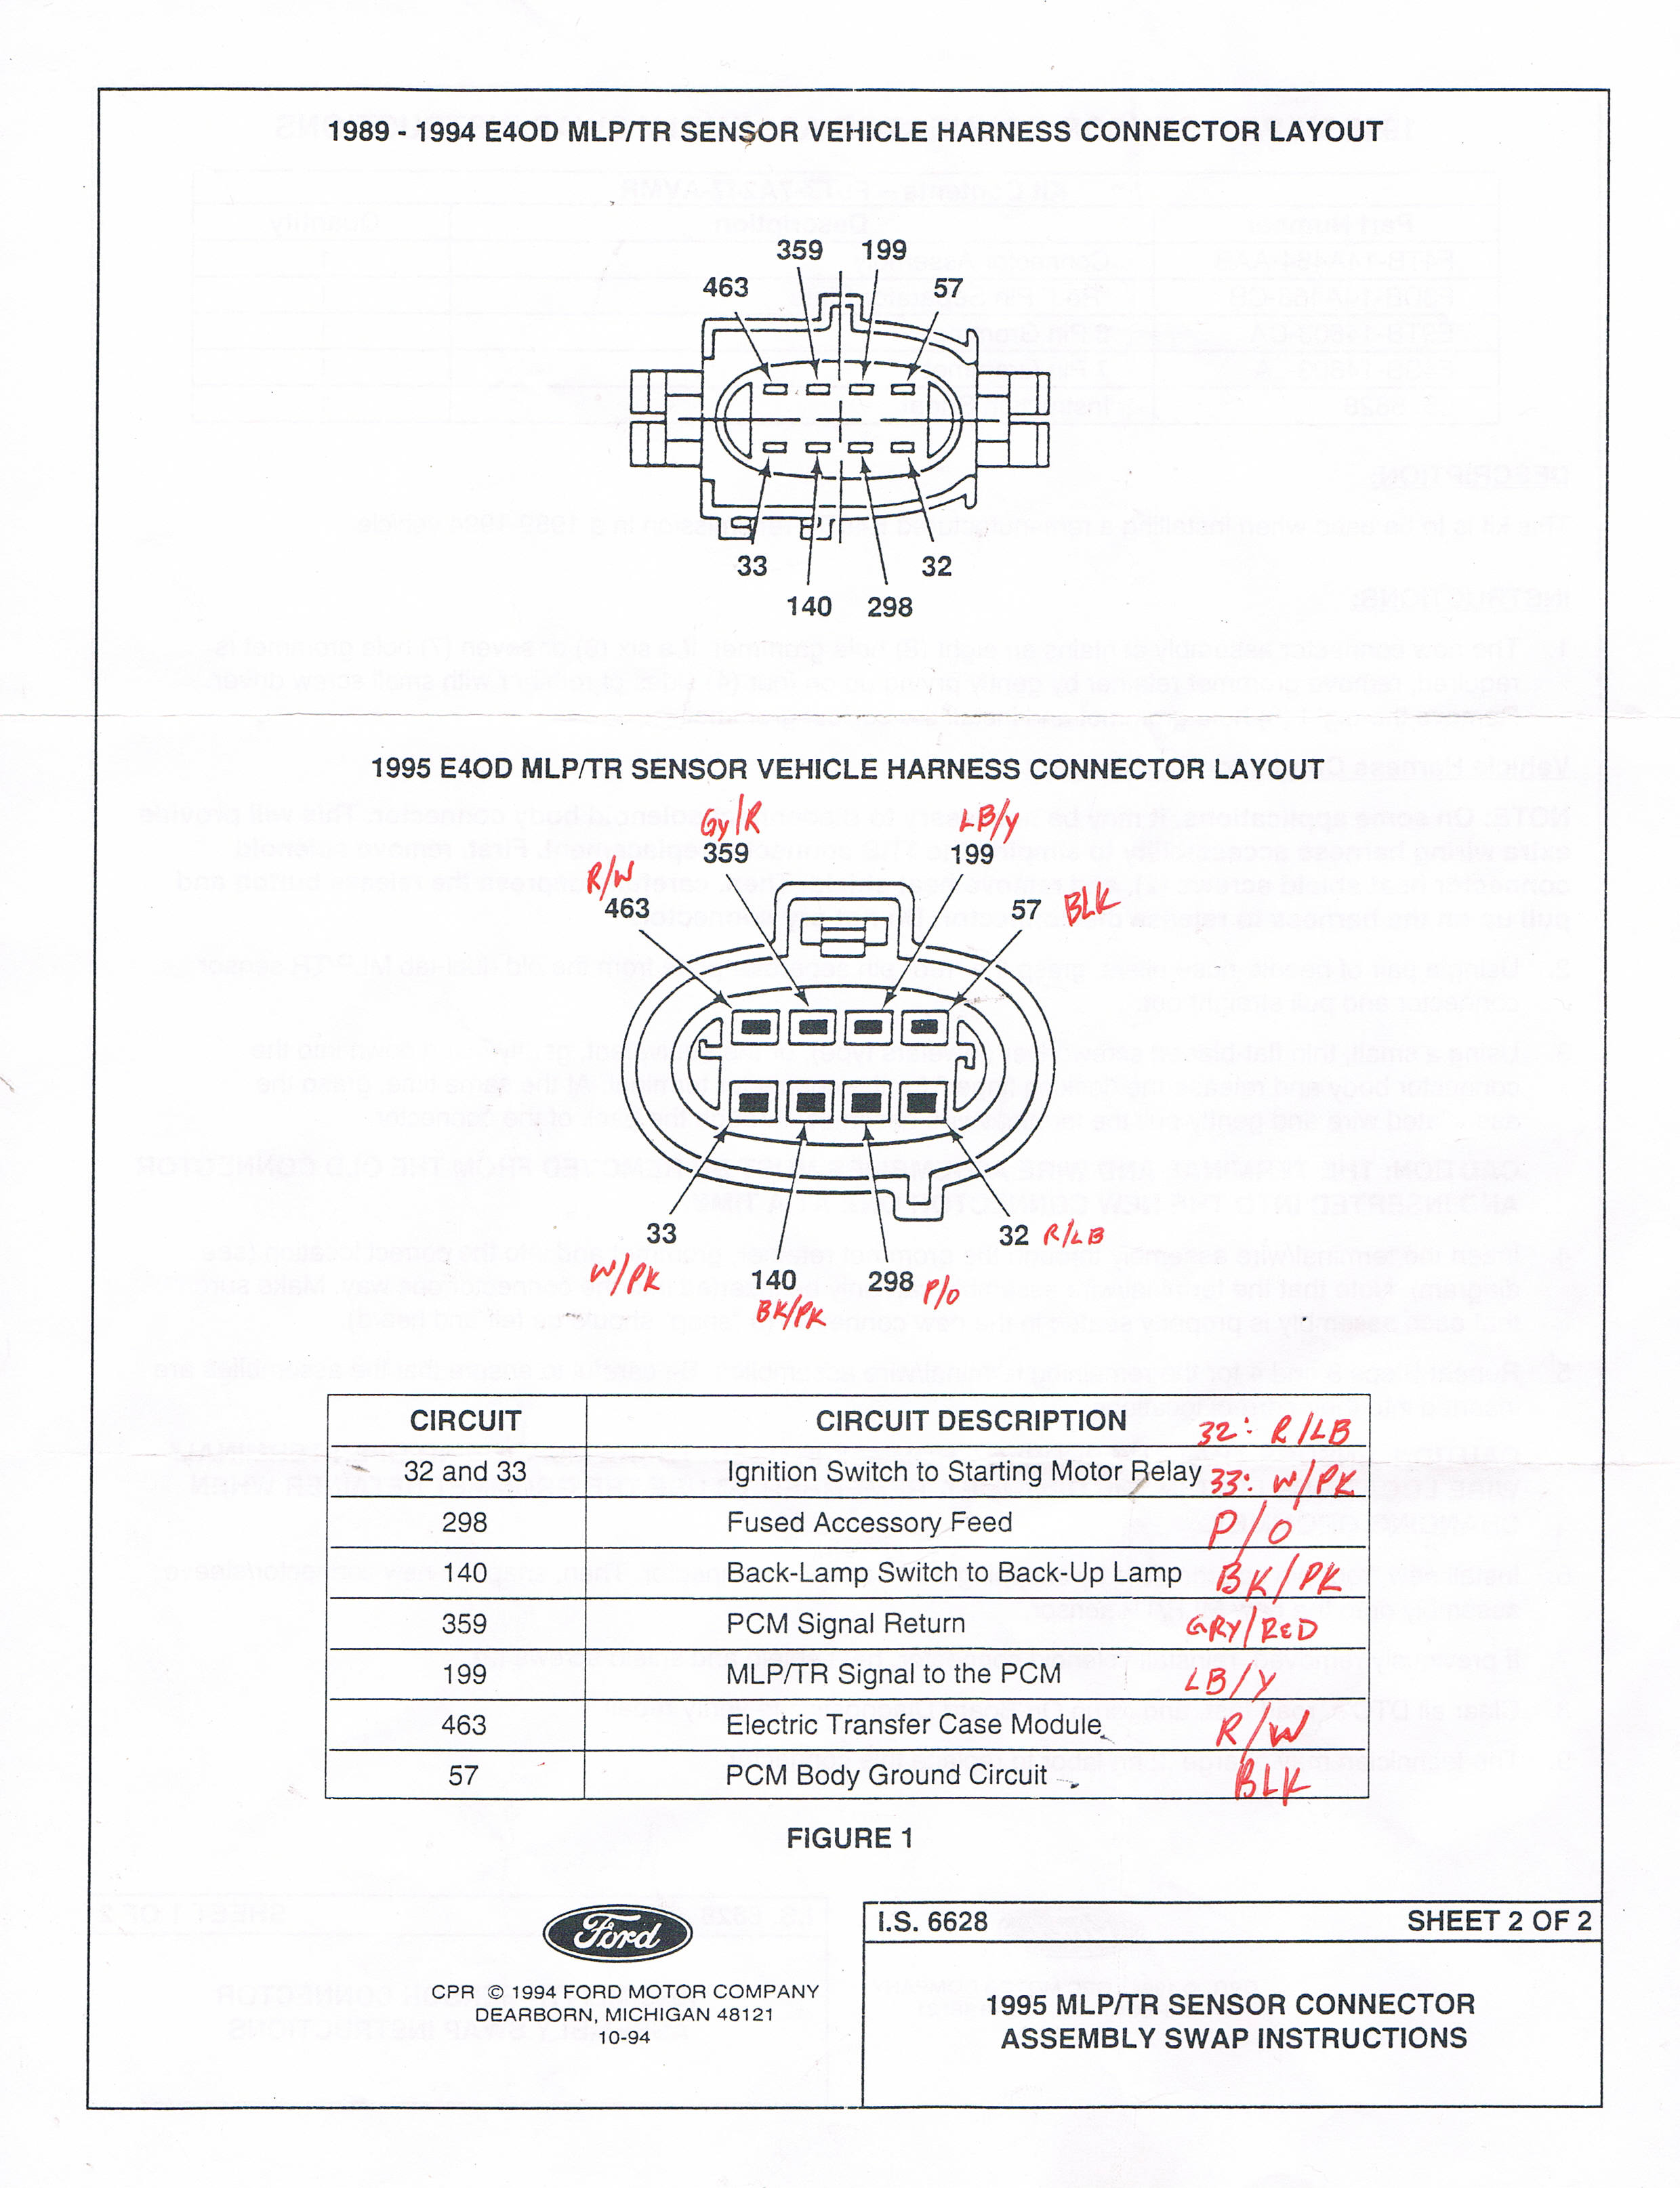 1985 Buick Riviera Wheels Wiring Diagrams likewise Hello World also PlymouthIndex further 1965 Buick Lesabre Fuse Box moreover 1965 Buick Electra Wiring Diagram. on 1963 buick riviera wiring diagram